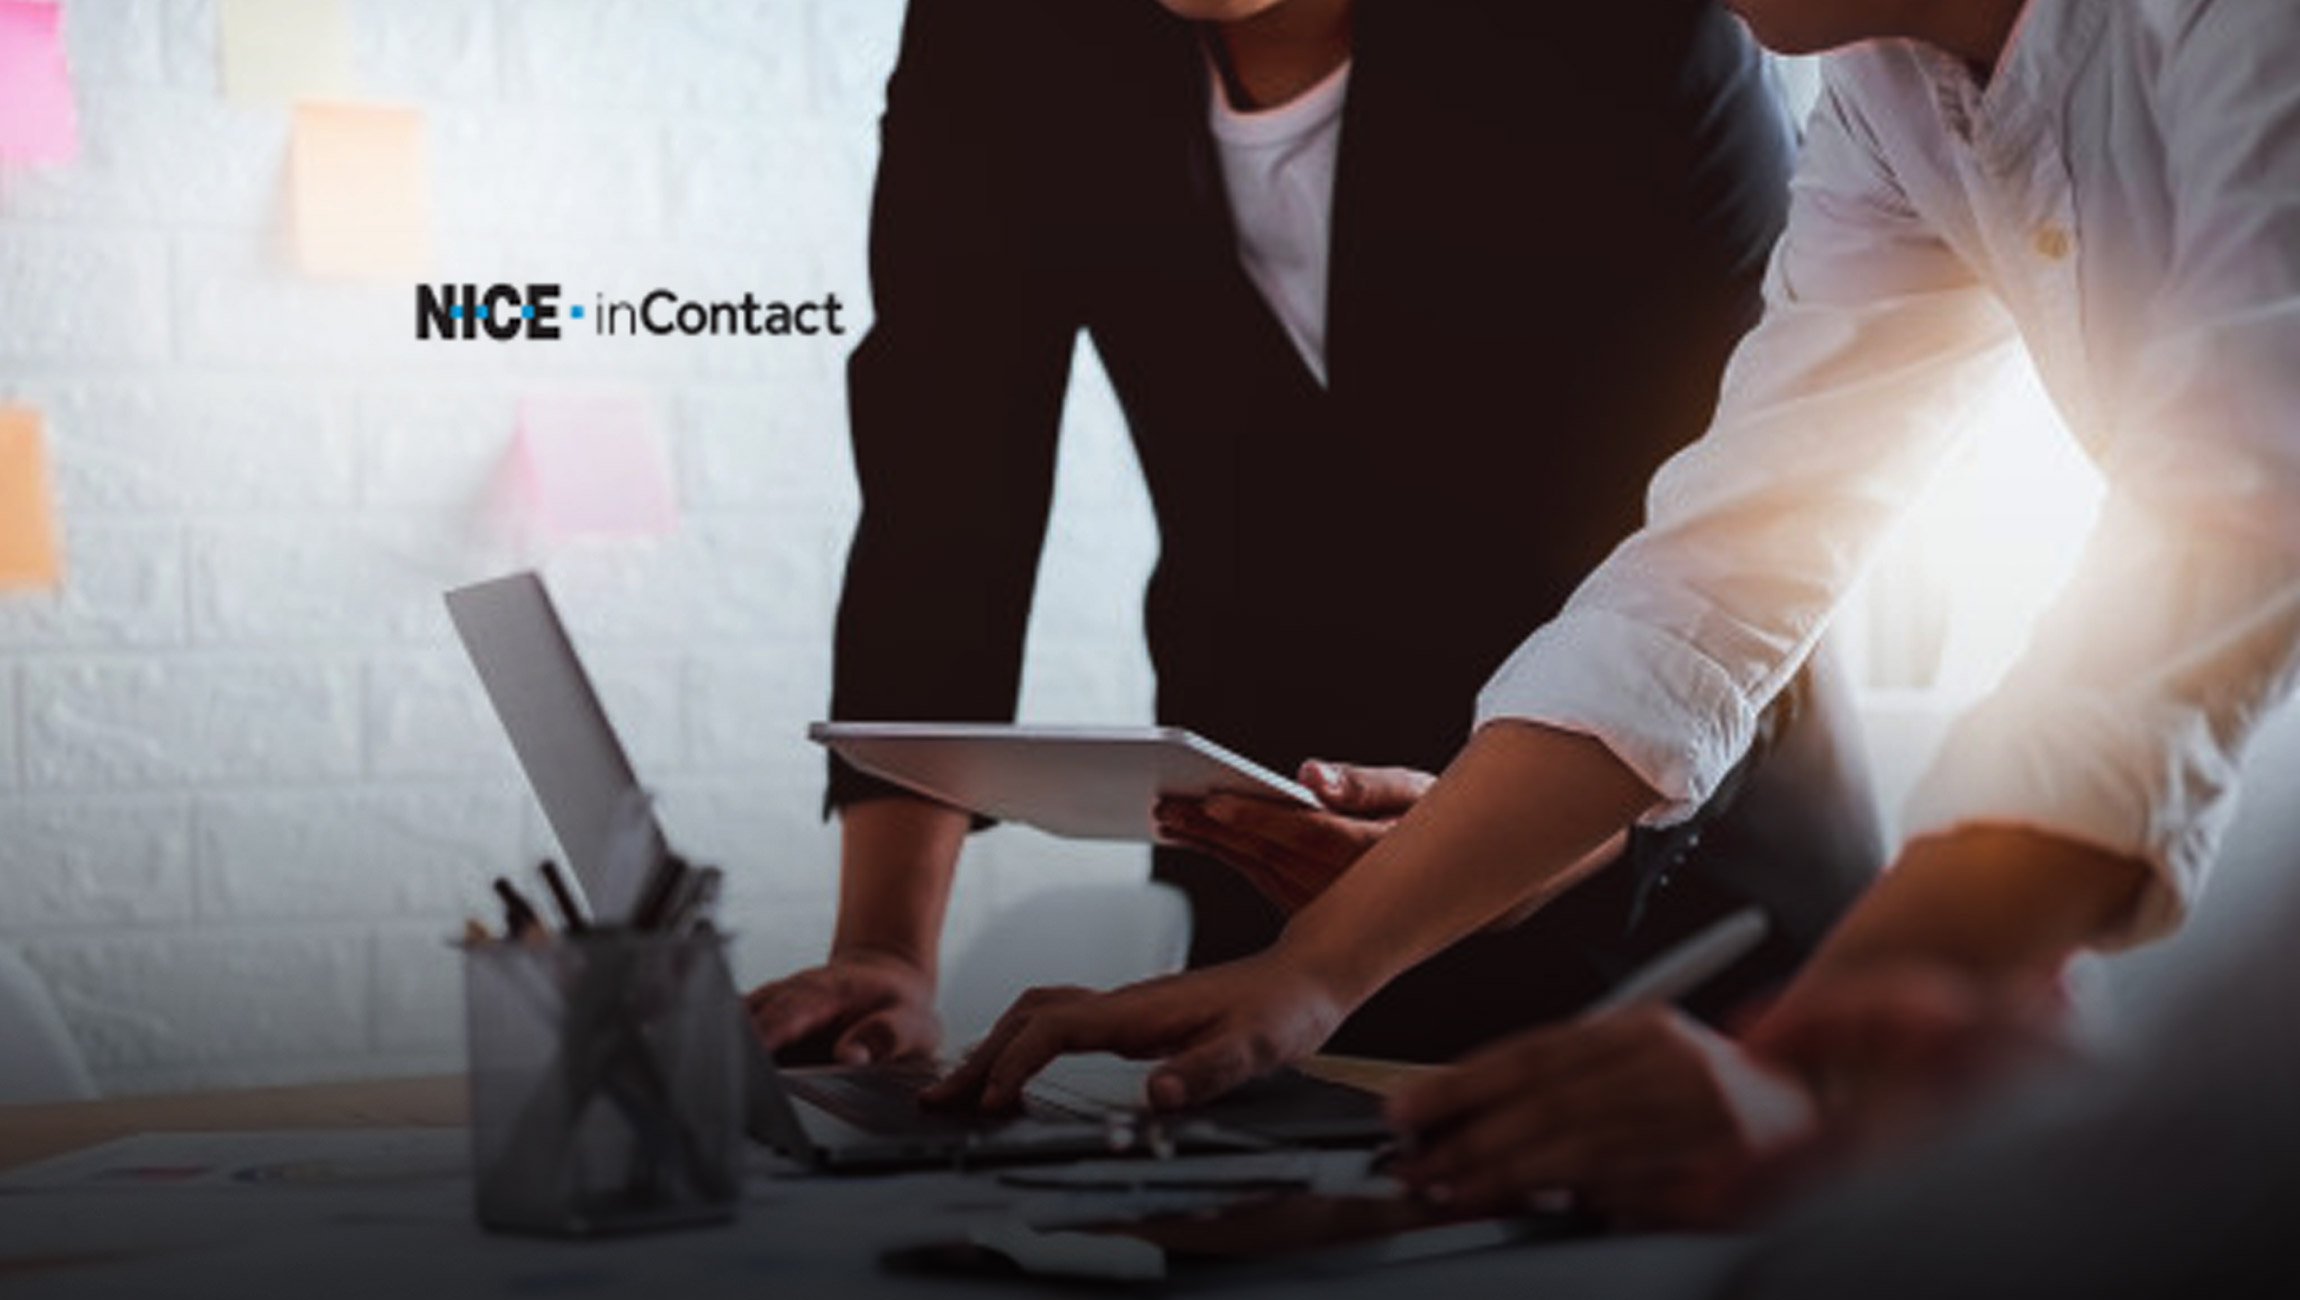 NICE inContact Teams up With Zoom for an Integrated Cloud Communications Platform